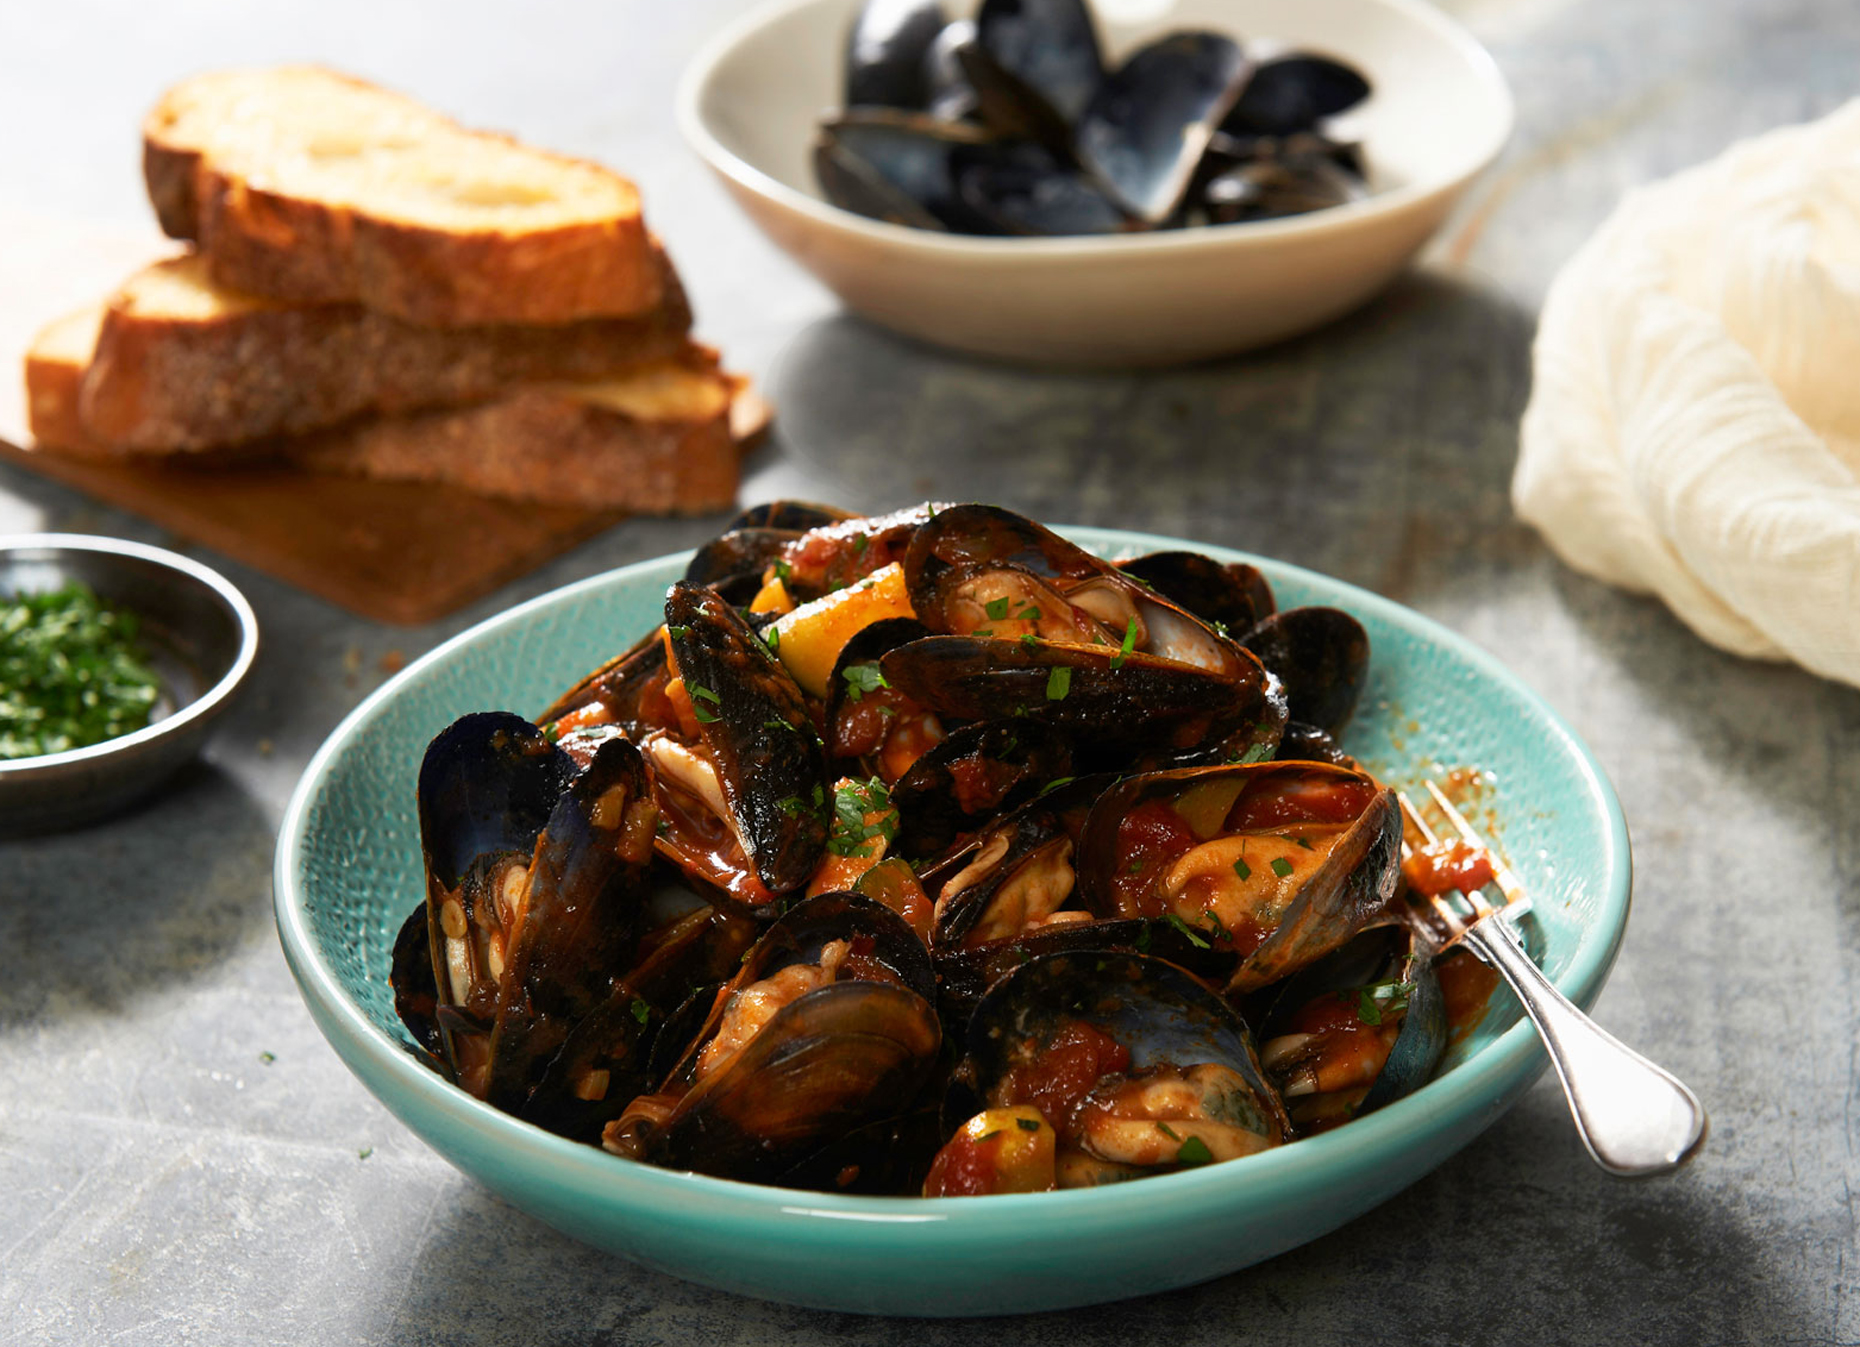 27-Mussels_Balsamic_Onion_0072